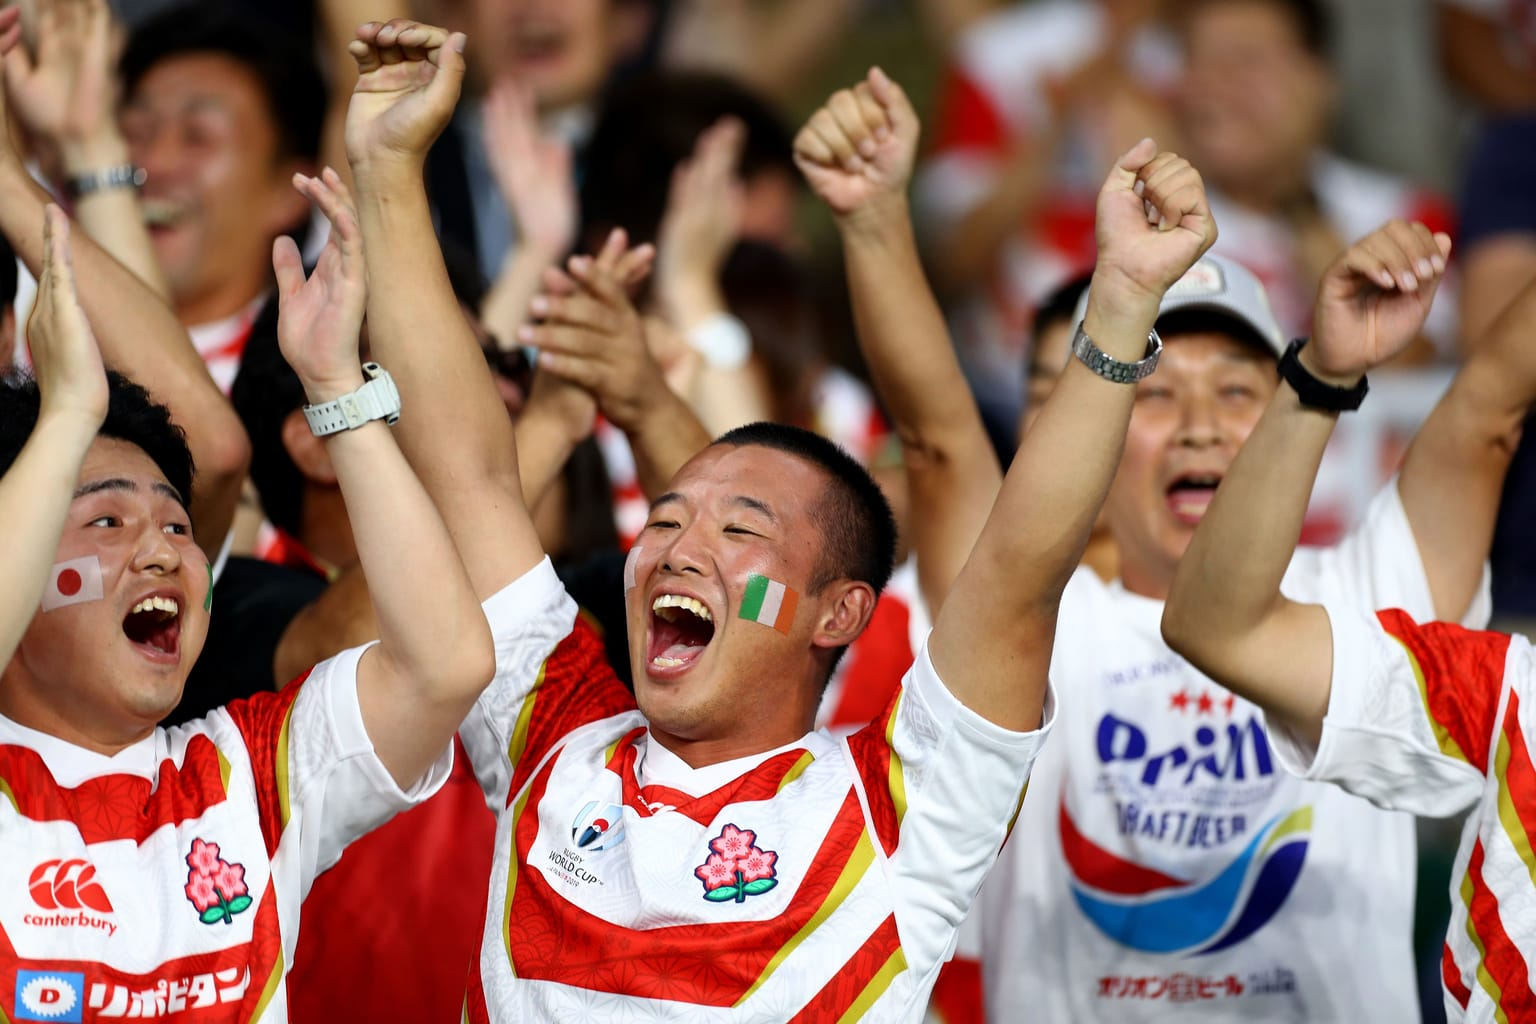 Japan fans at Rugby World Cup